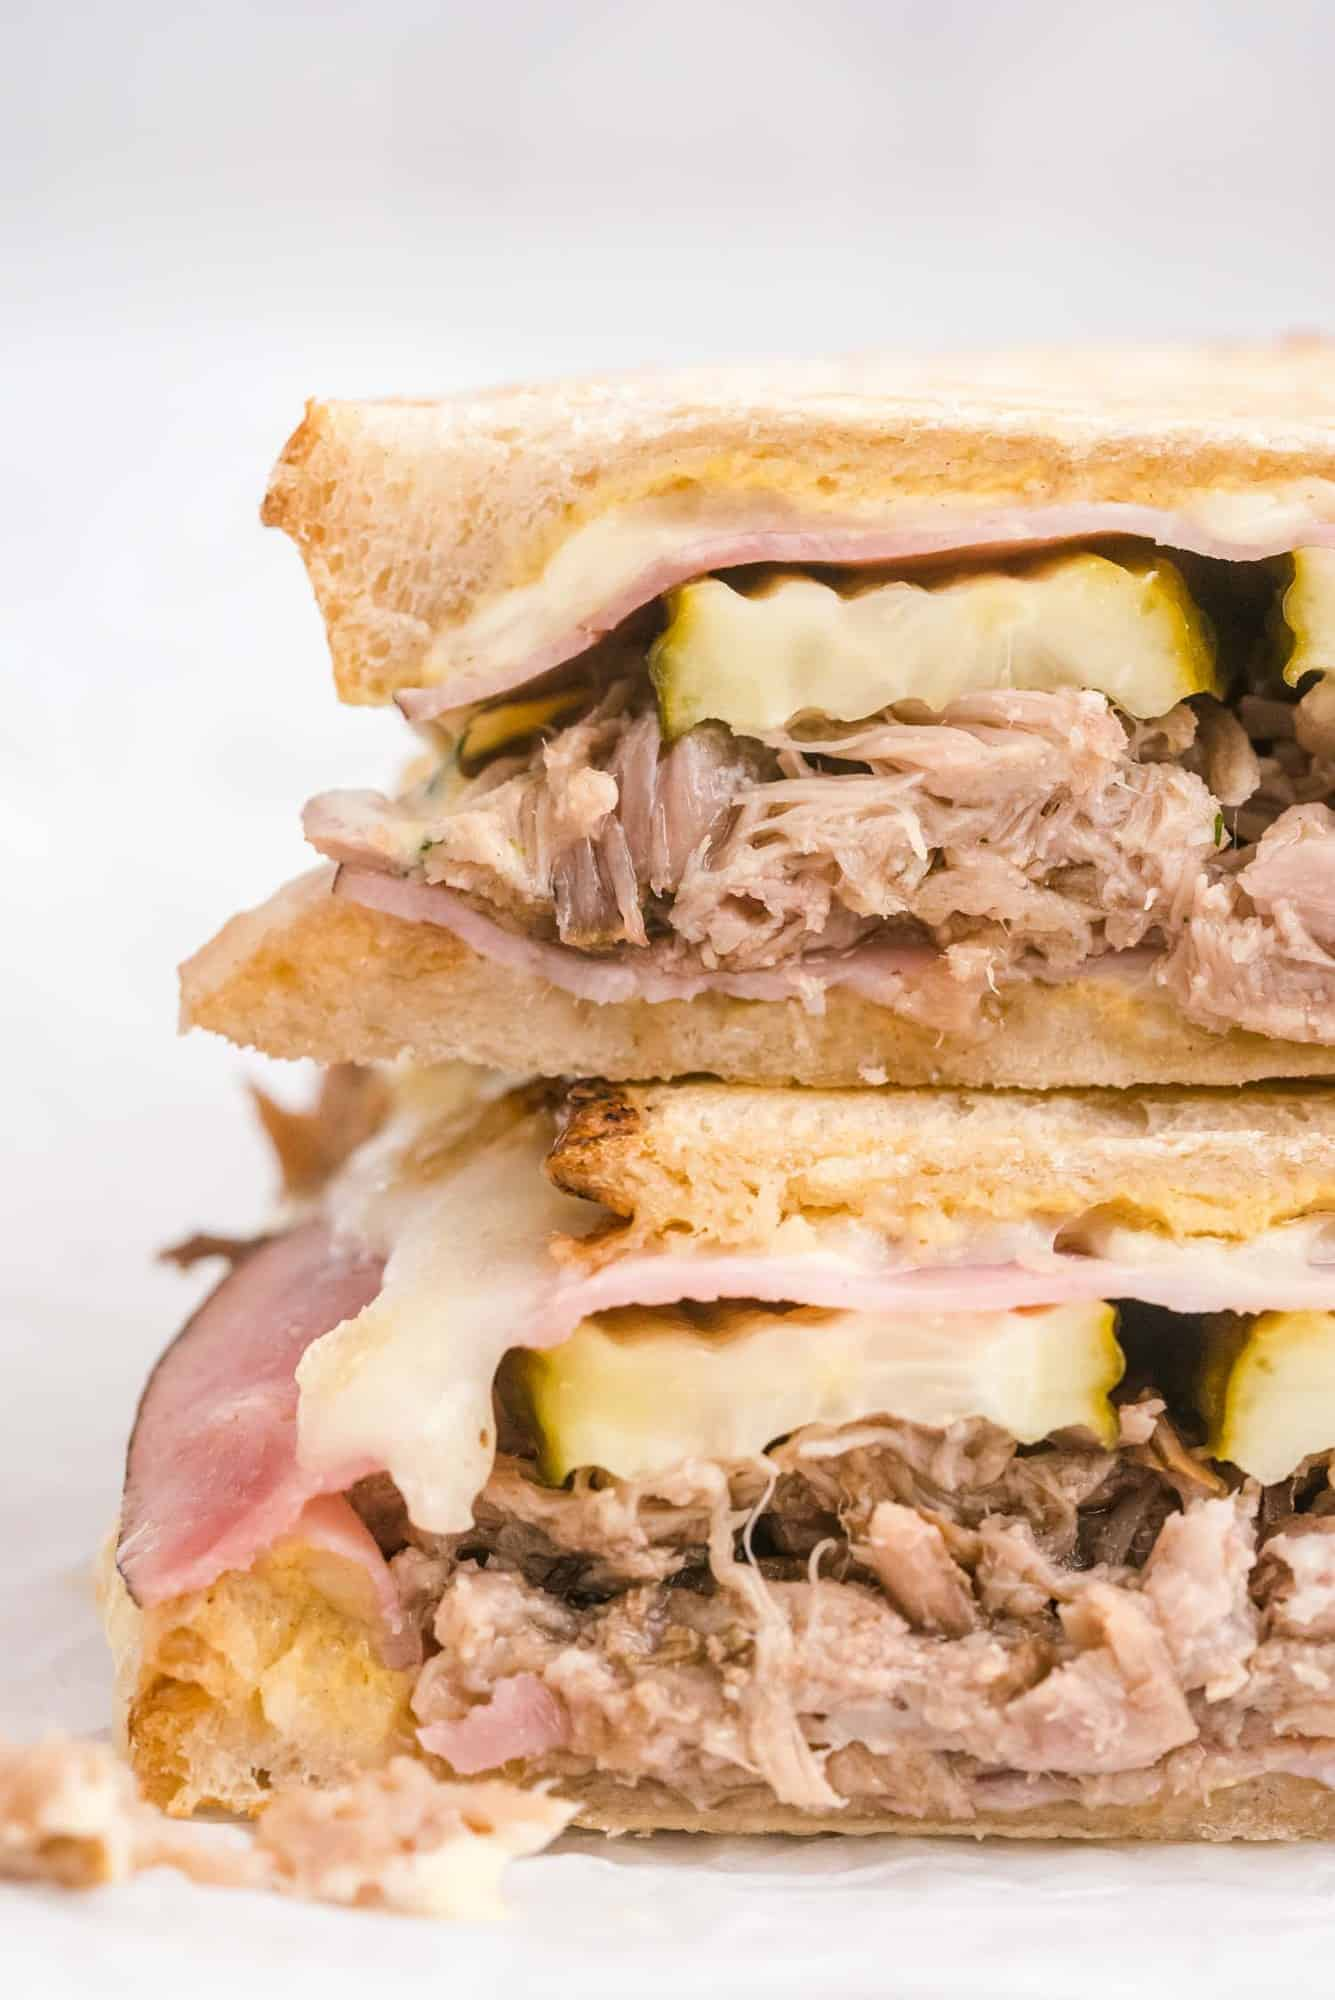 Close up of a sandwich showing layers of pork, pickles, cheese, and ham.